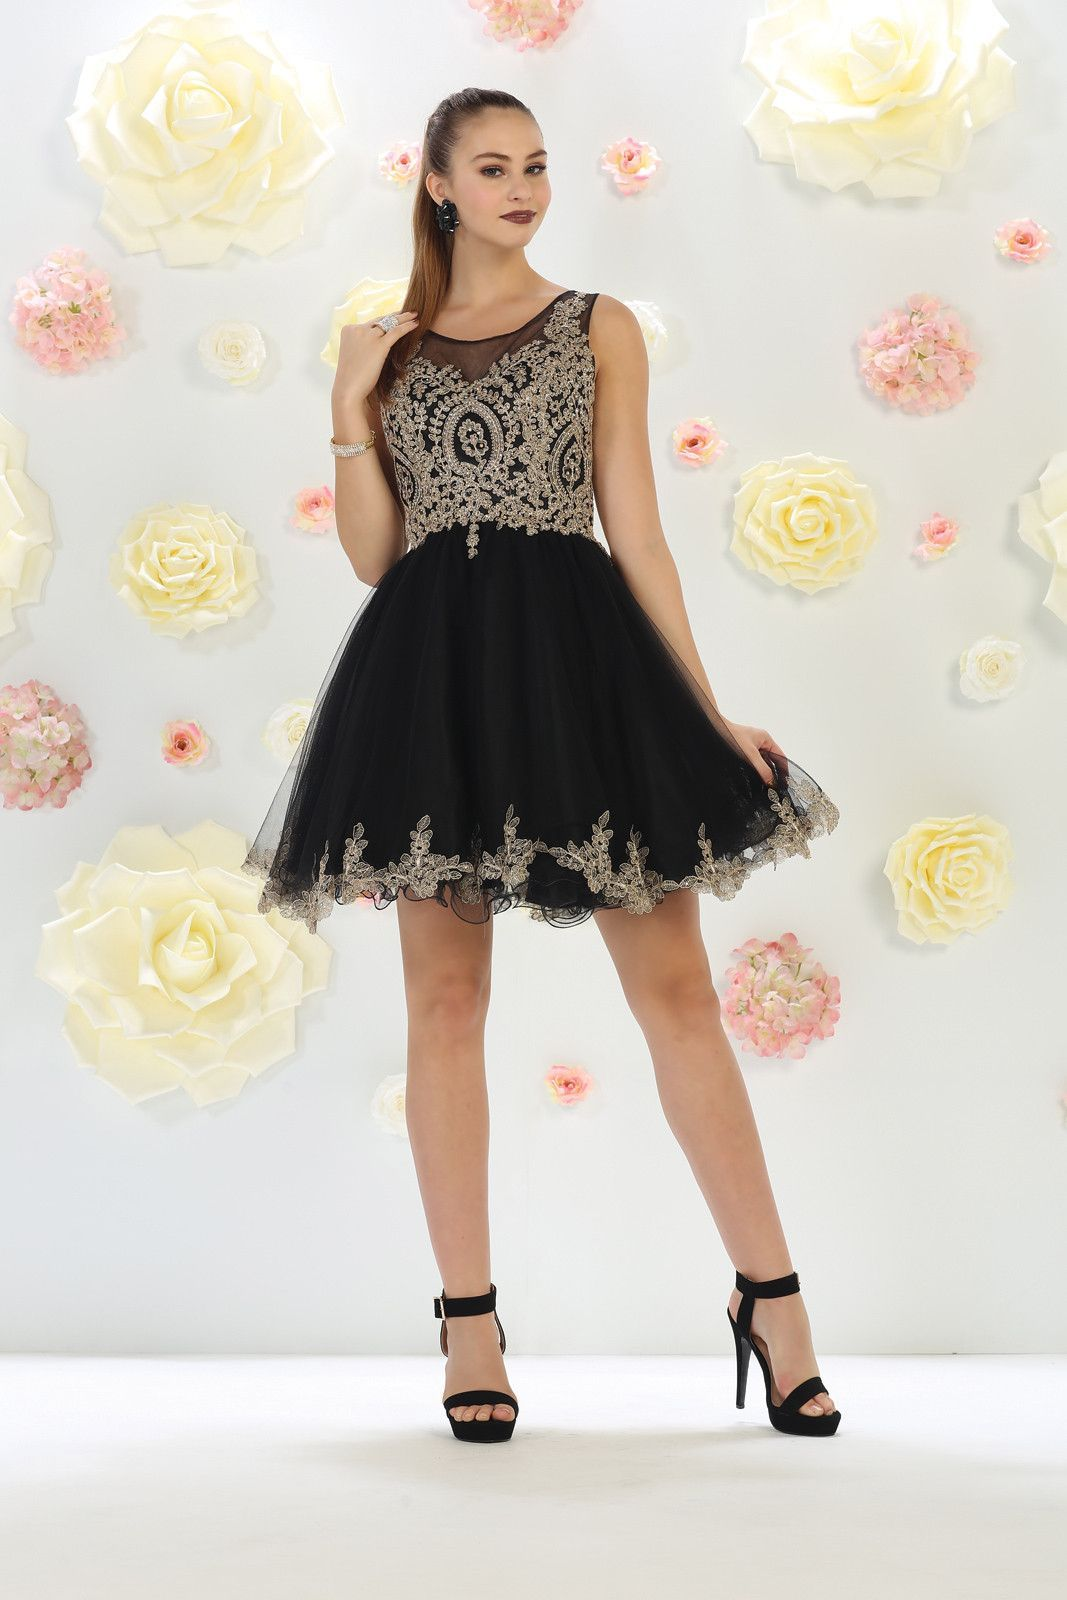 Thedressoutlet prom short dress homecoming evening party products